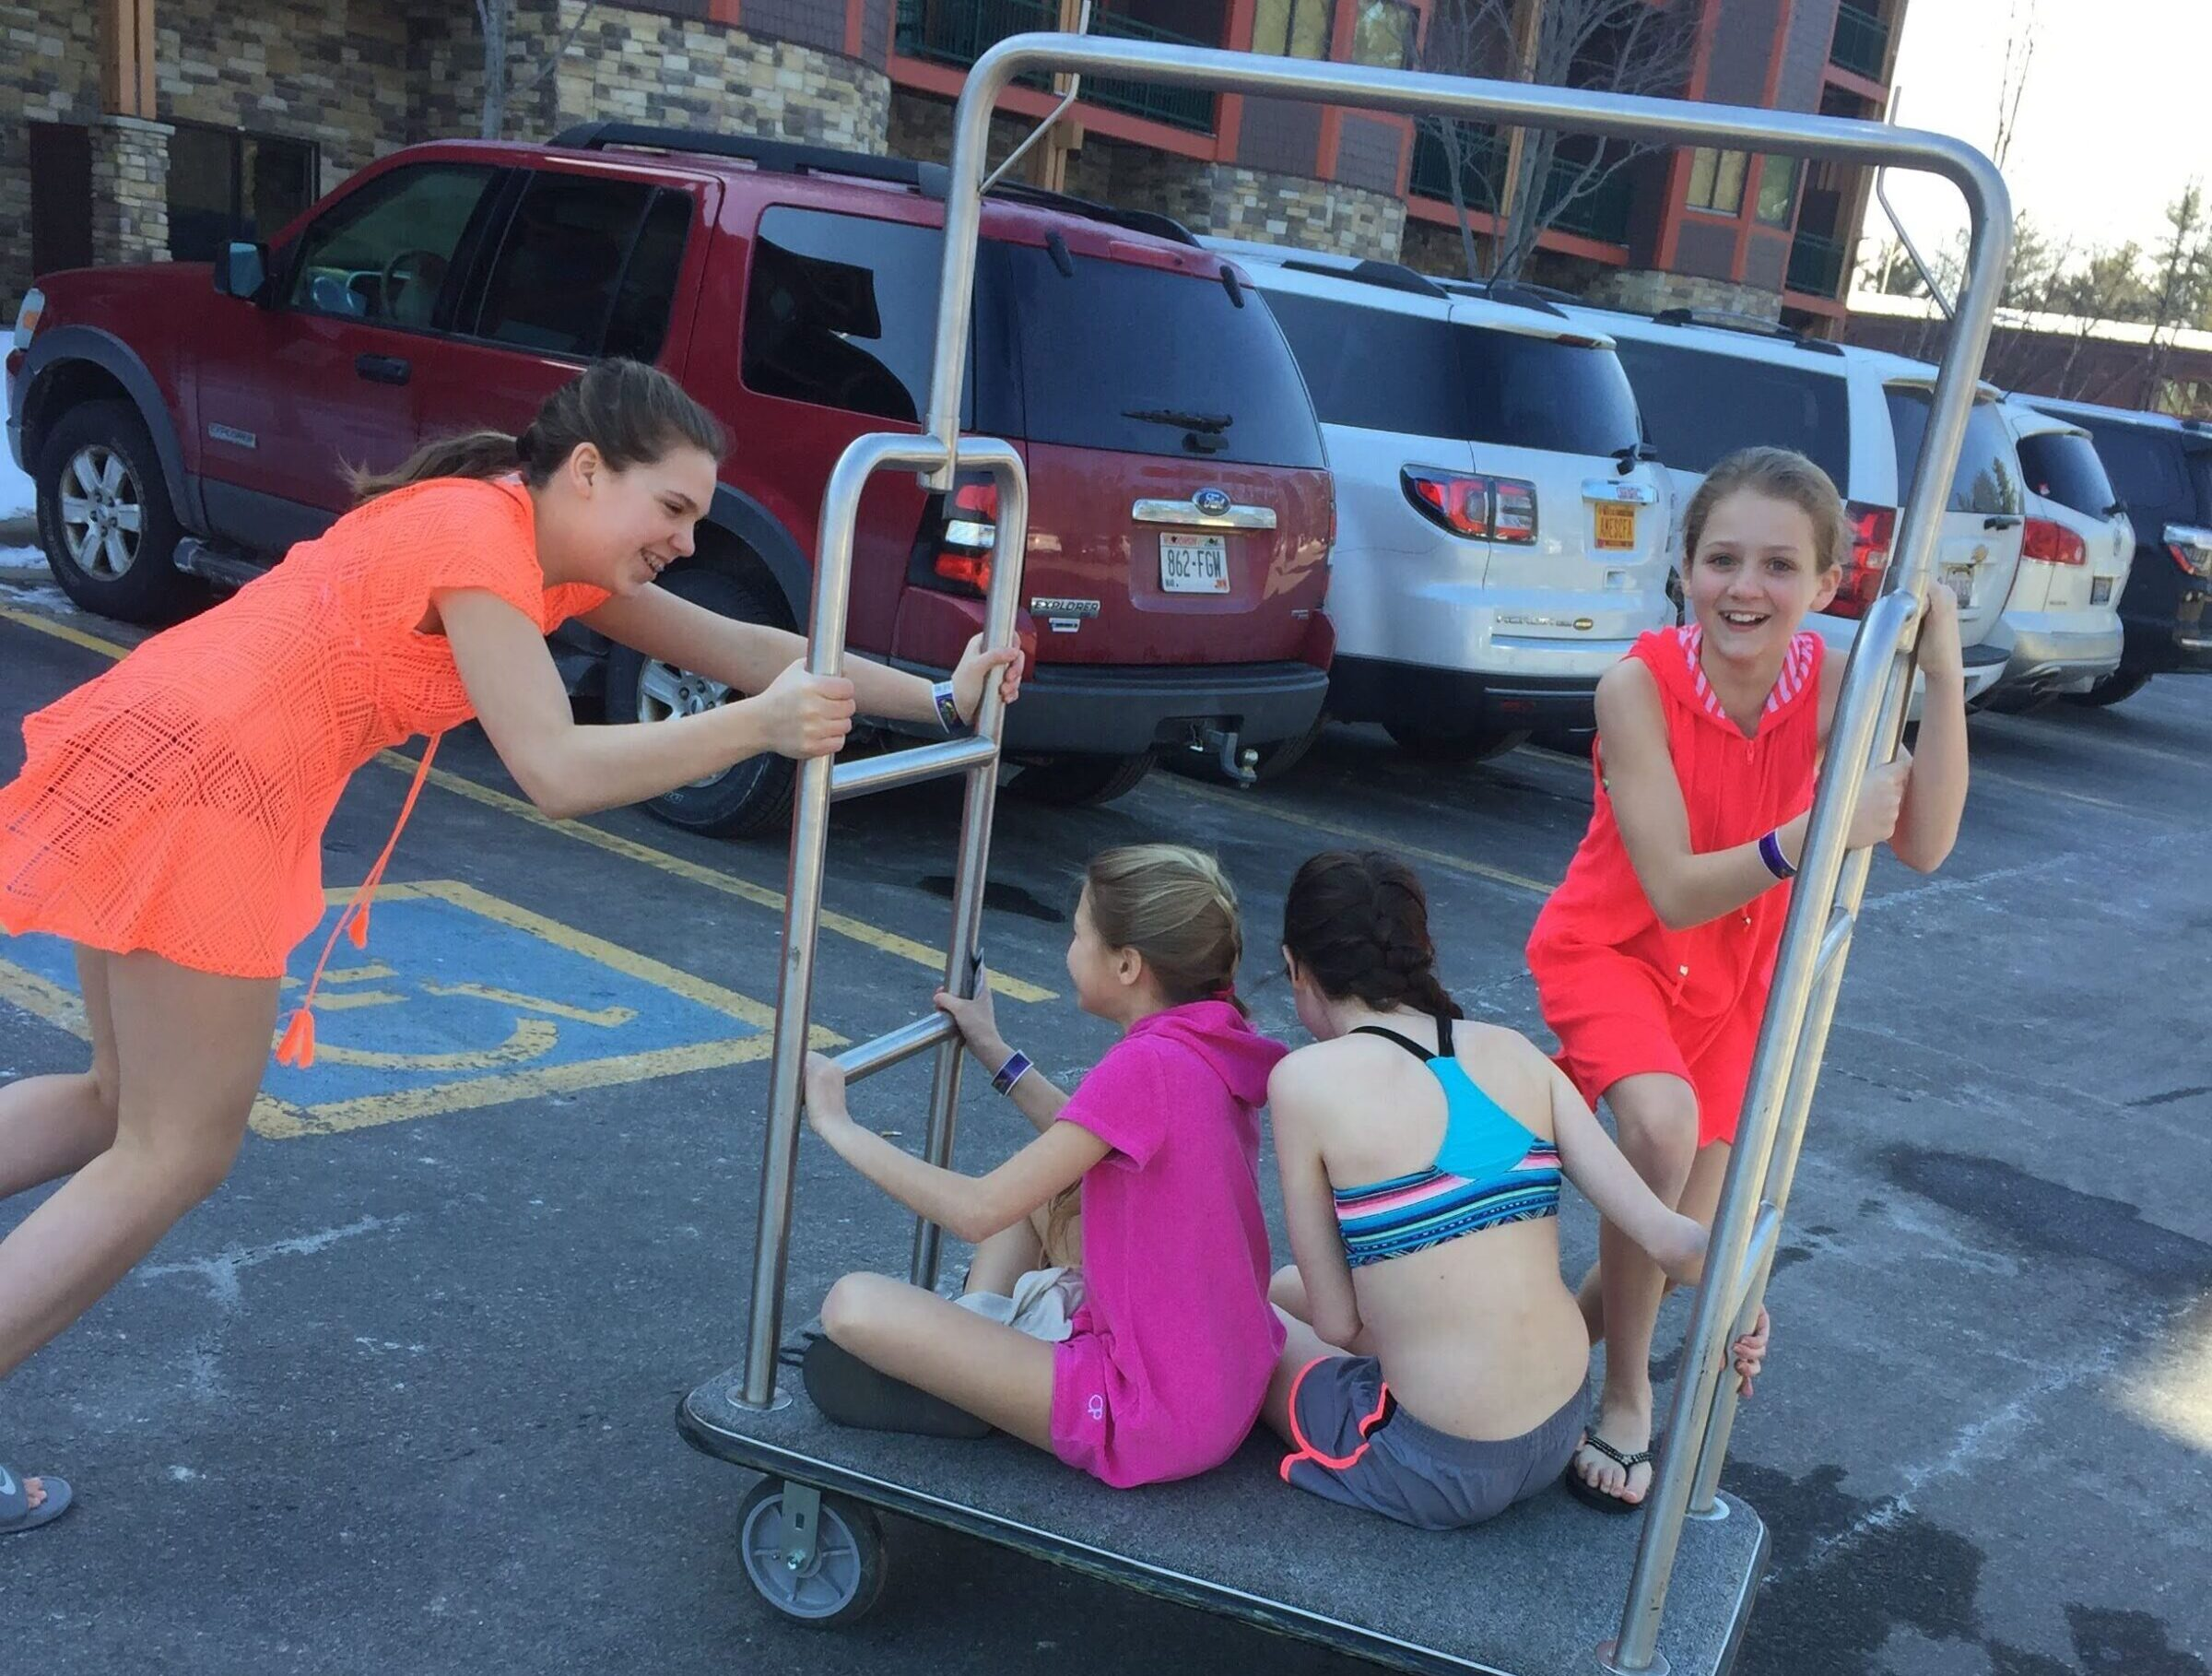 Girls taking a ride on luggage cart in hotel parking lot